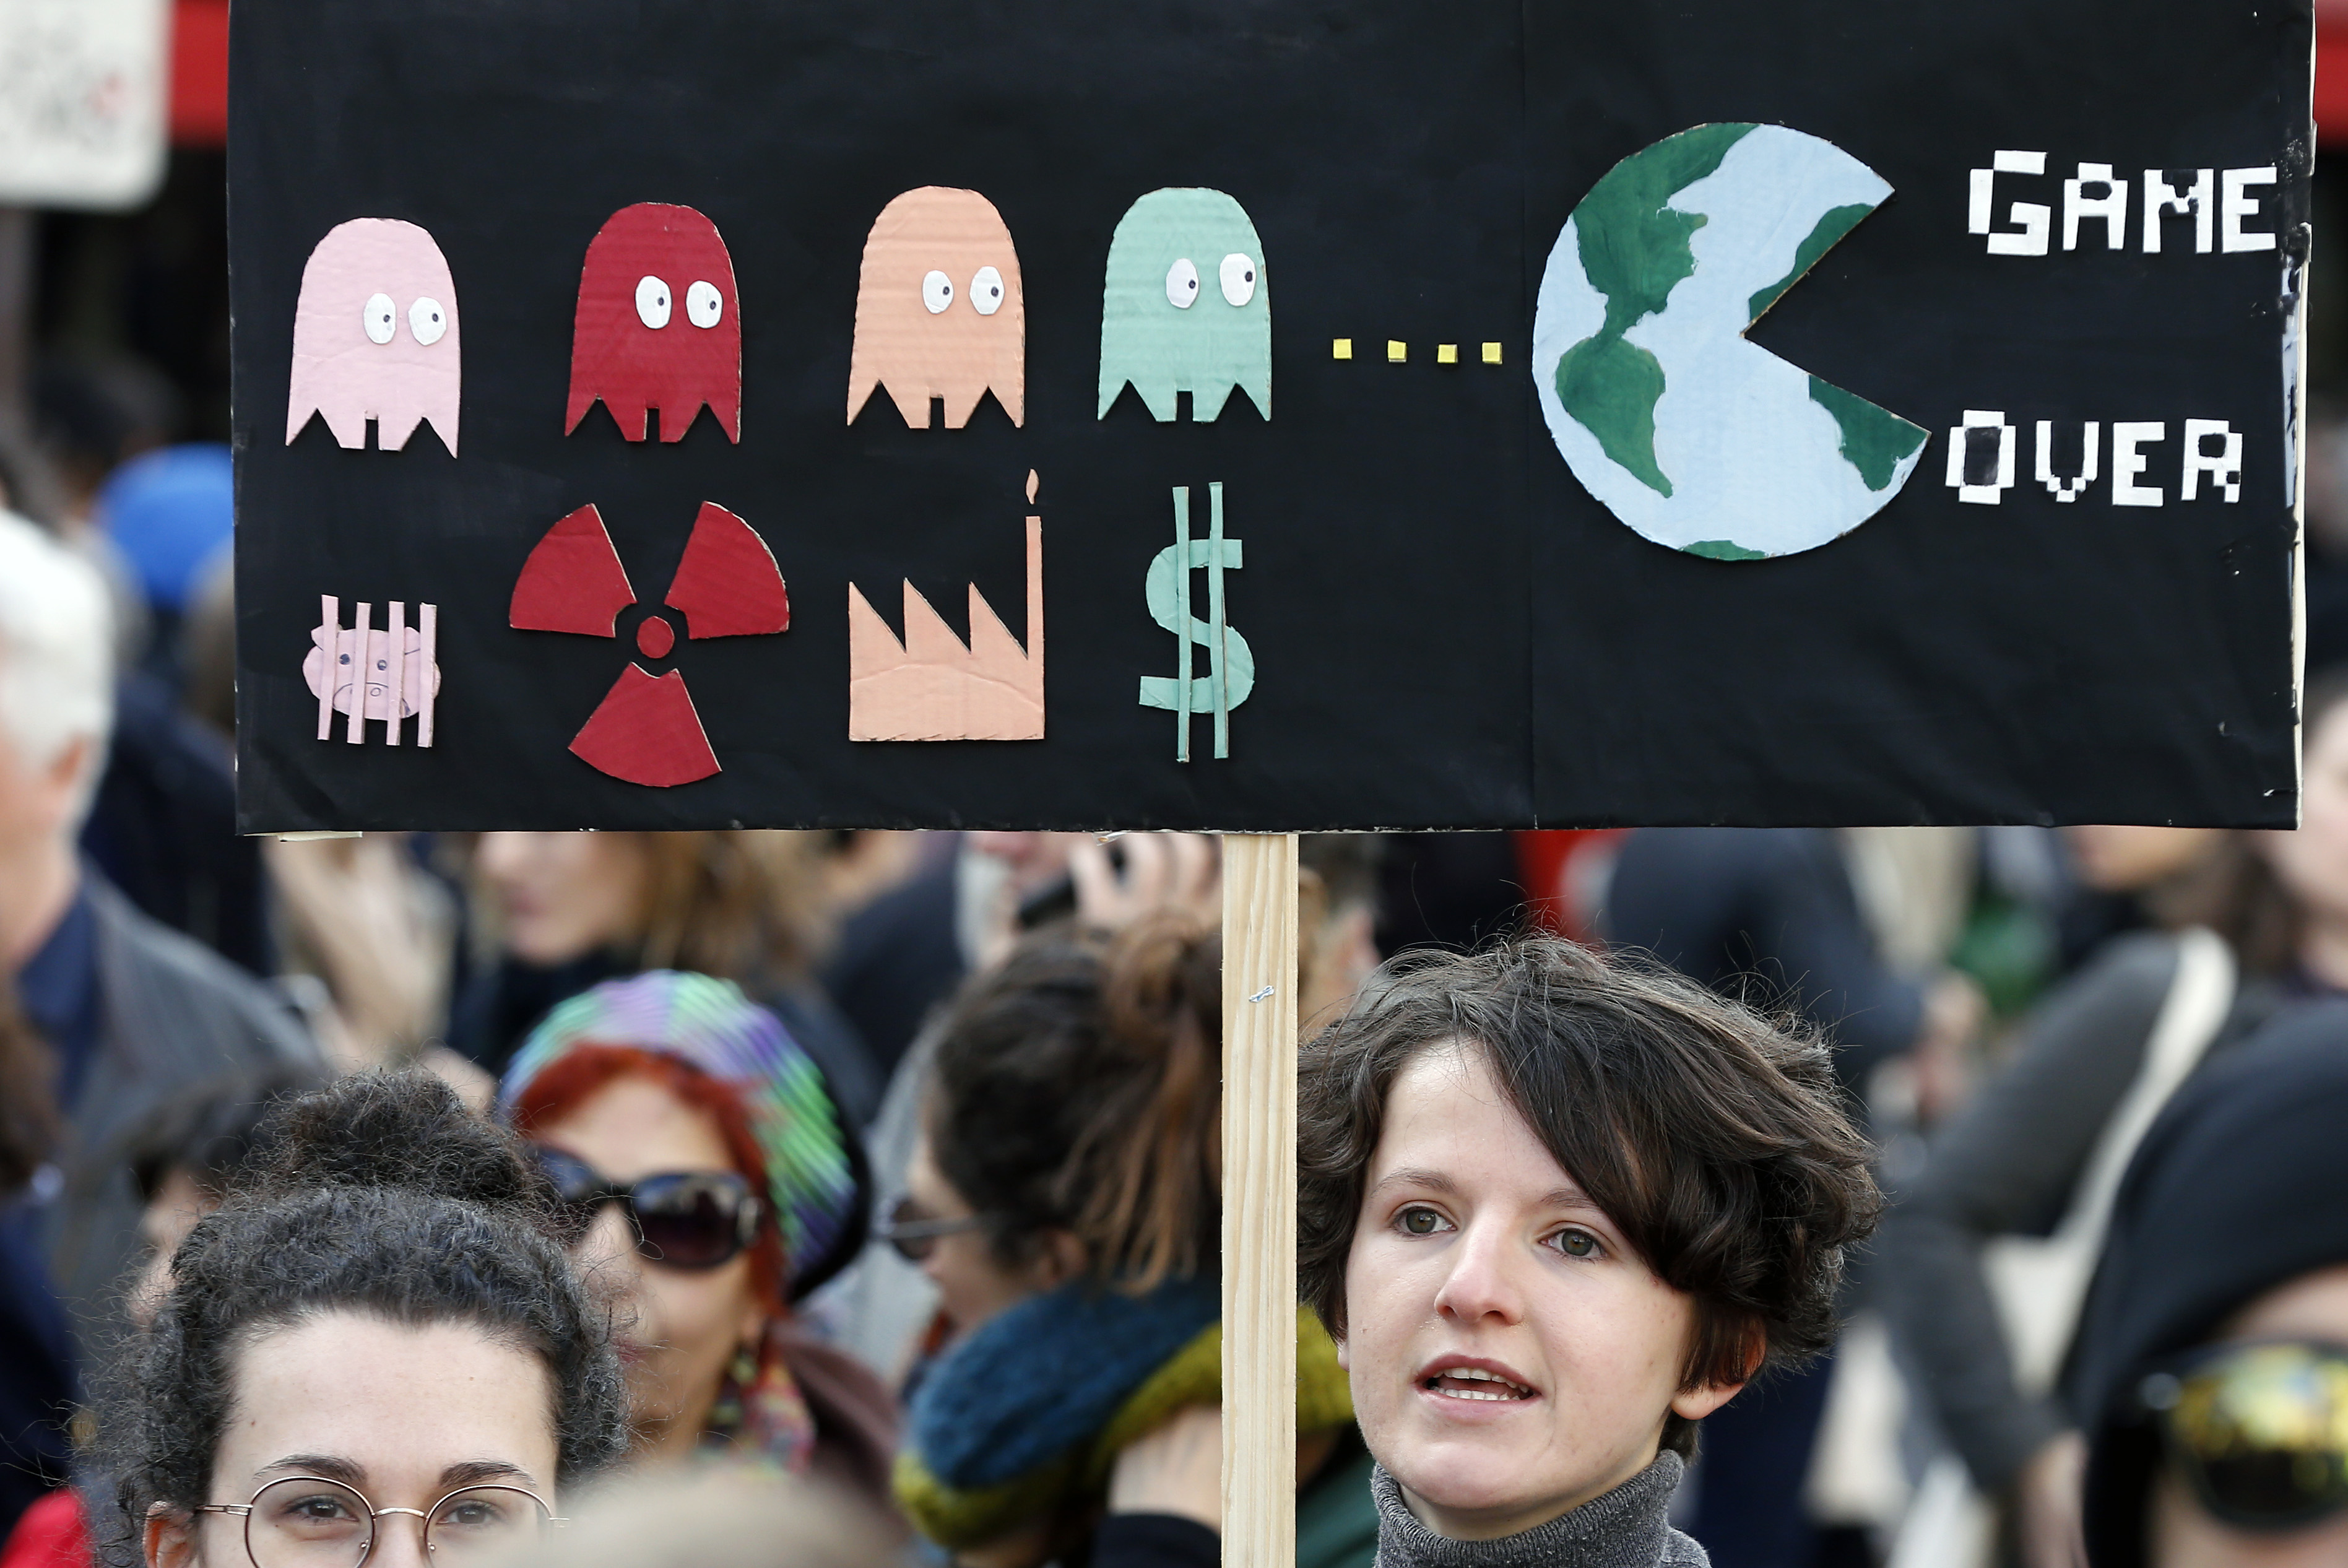 """PARIS, FRANCE - MARCH 16: A protester holds a sign reading """"Game over"""" as he takes part in the """"March of The Century"""" (La Marche du Siecle) to demand answers to climate change on March 16, 2019 in Paris, France. Several thousand people demonstrated in Paris to denounce the government's inaction on climate. Chesnot/Getty Images"""